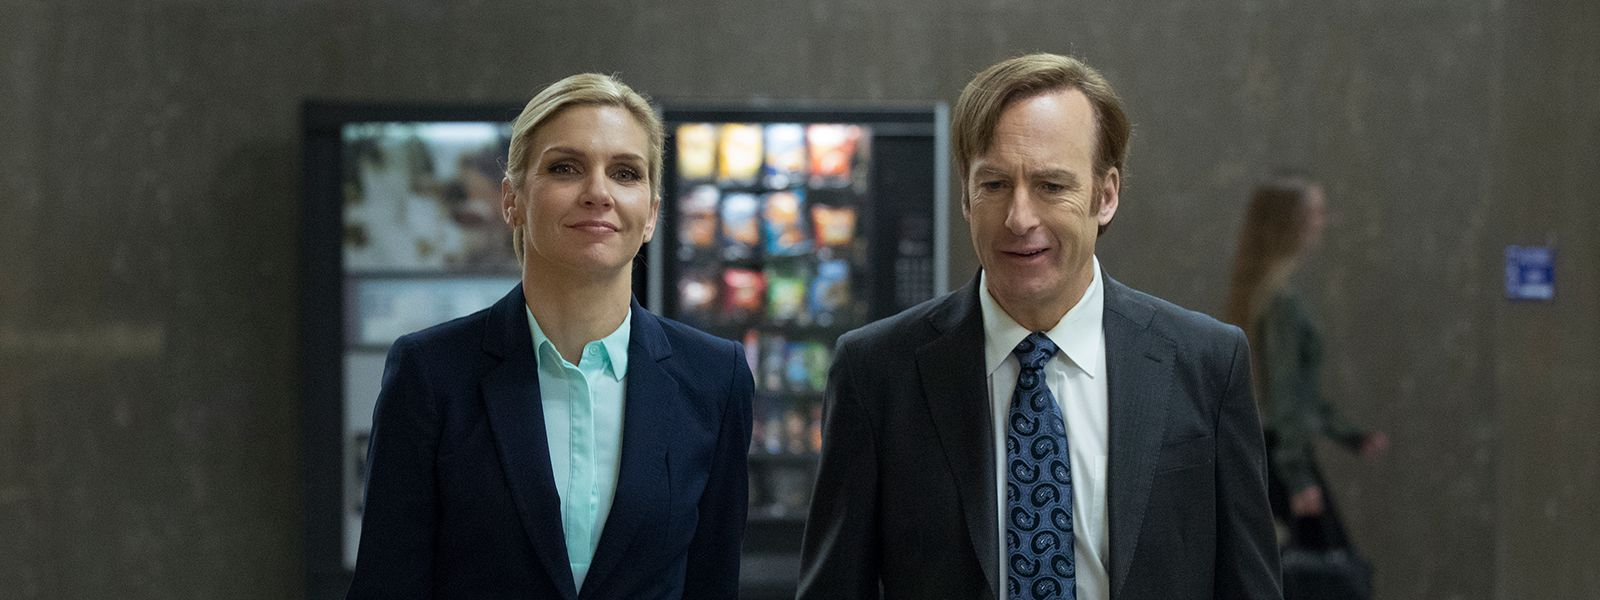 better-call-saul-304-post-kim-wexler-rhea-seehorn-bob-odenkirk-jimmy-mcgill-800×600